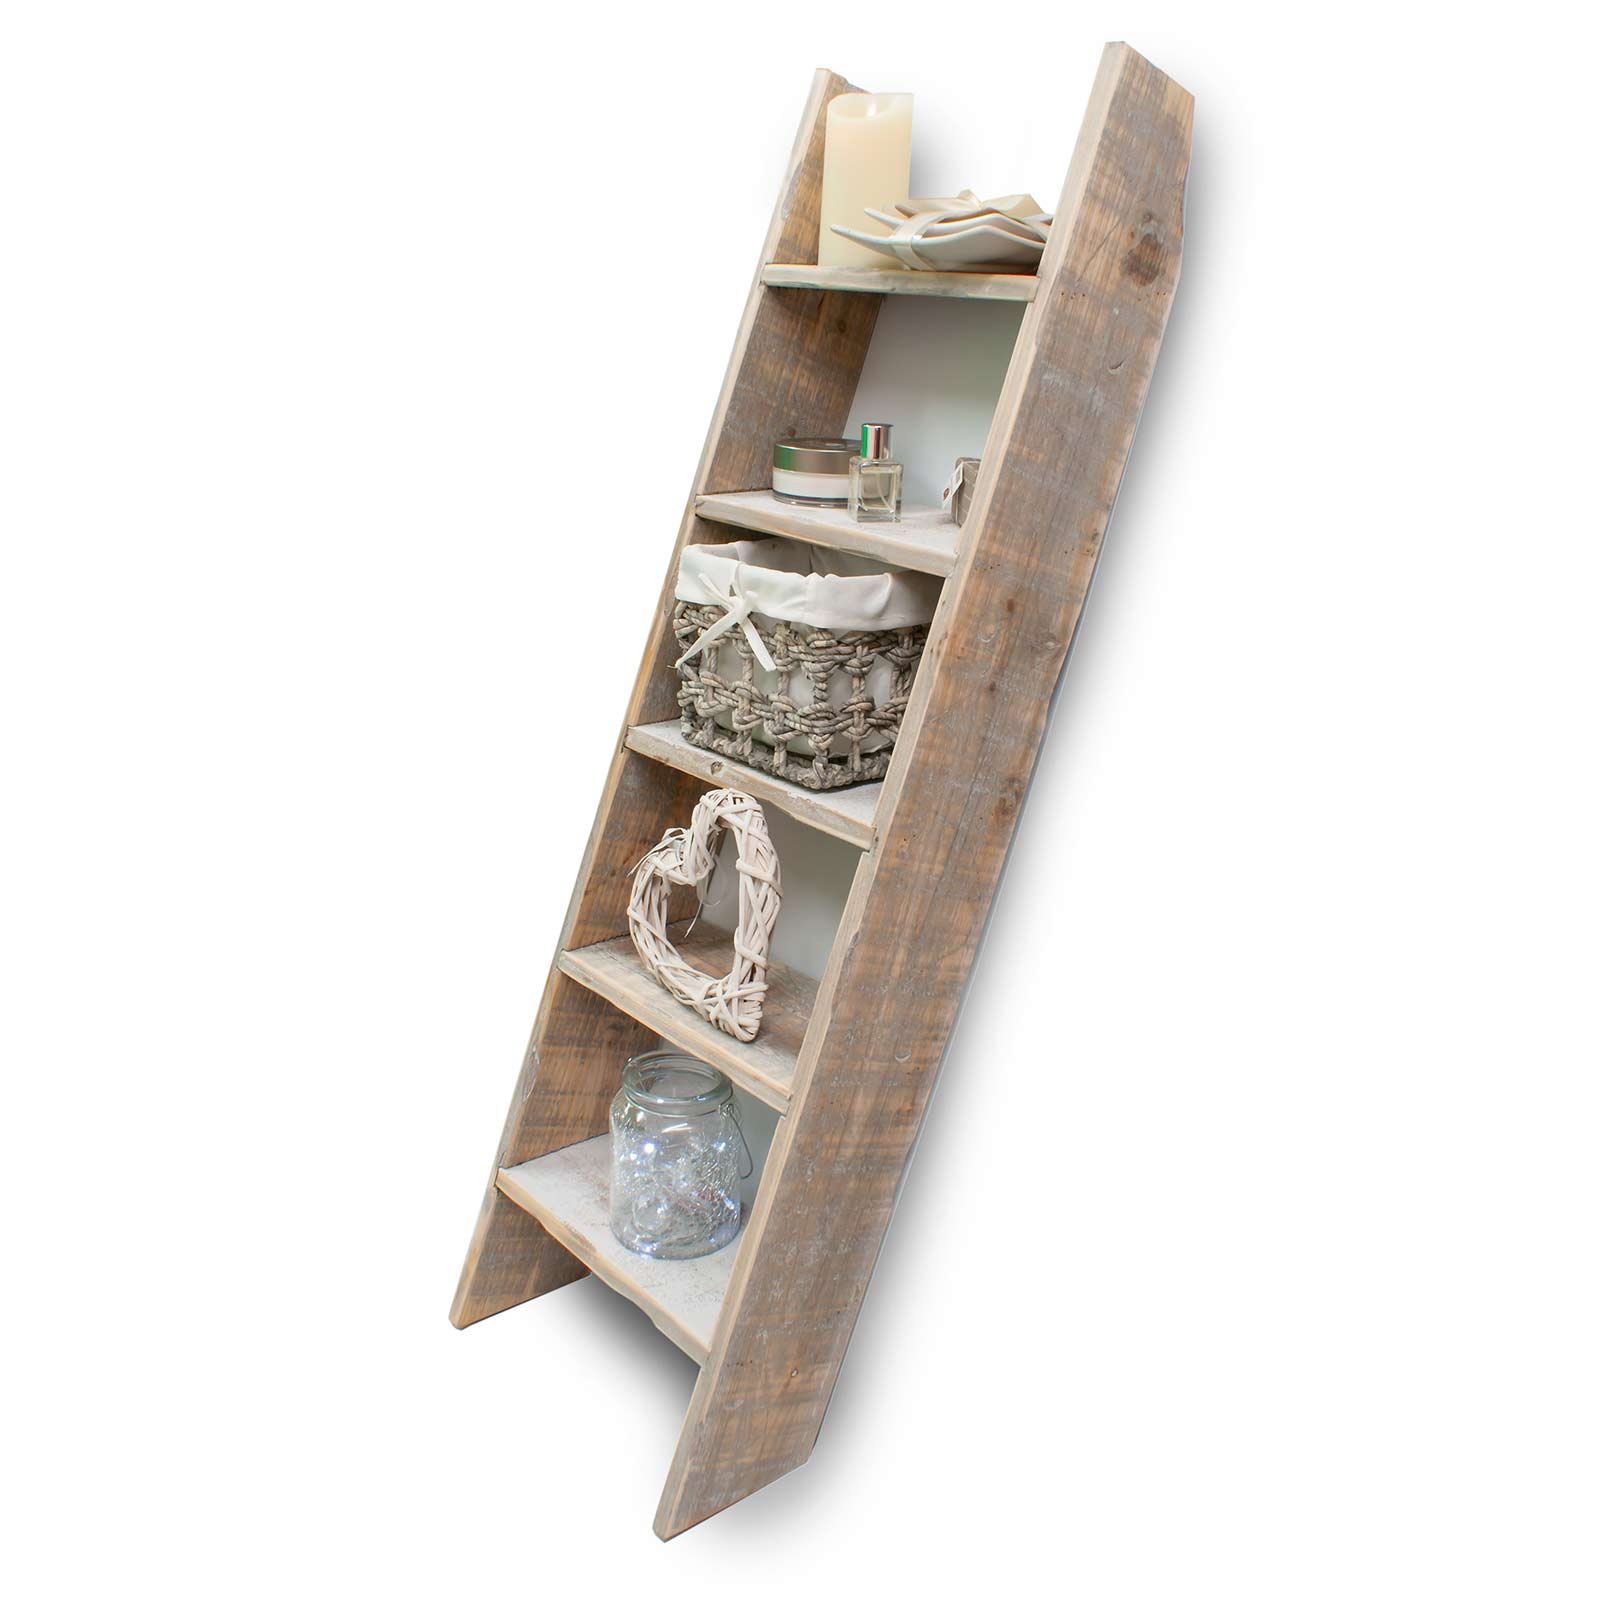 Ladder Shelving 5 Tier Wood Decorative Rustic Home Or Shop Display Di6